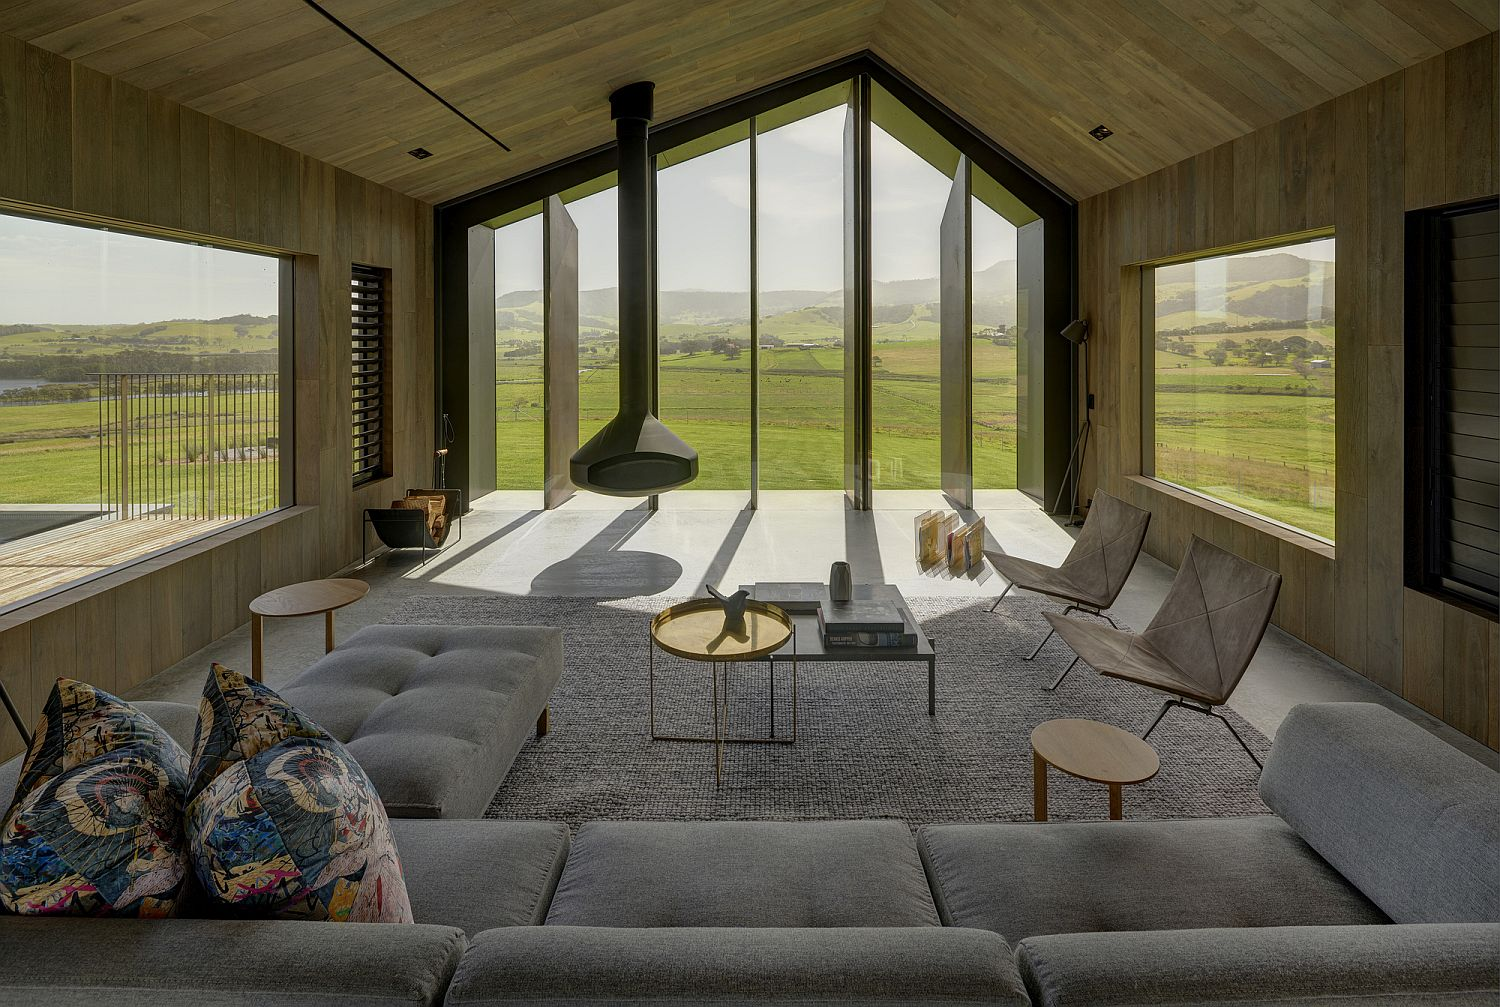 Living area with beautiful views of the green landscape outside